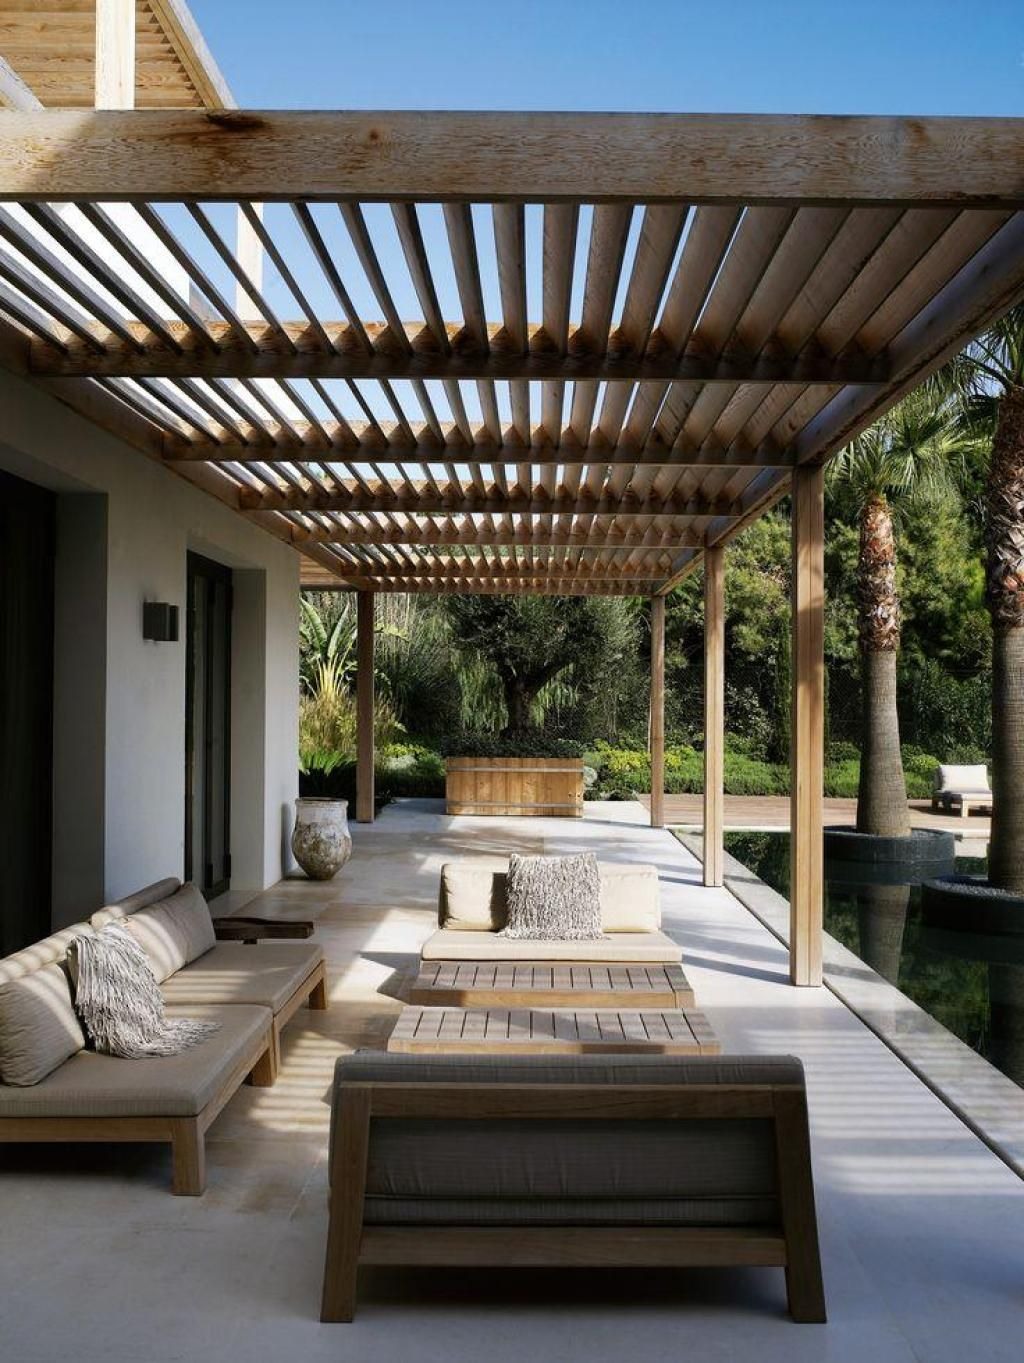 modern patio design ideas Pin by www.tapja.com on outdoor design | Pergola patio